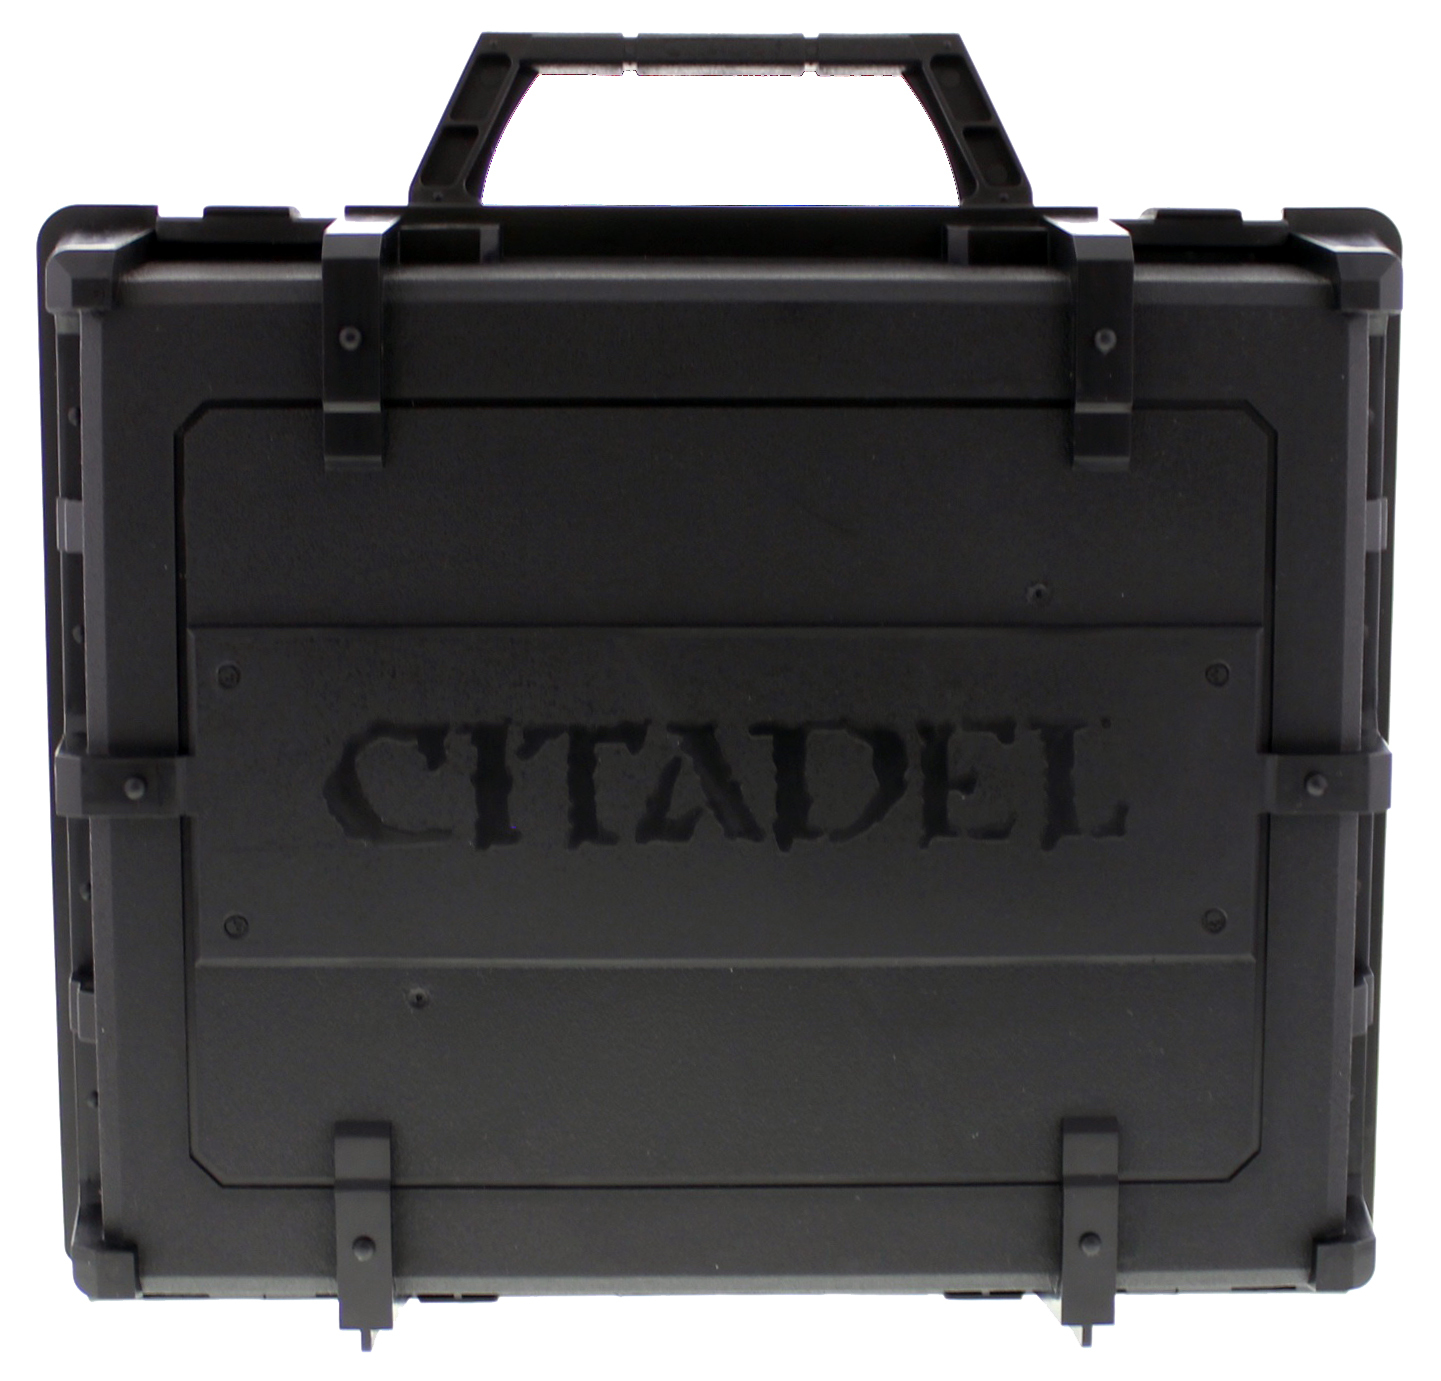 Citadel Skirmish Figure Case image